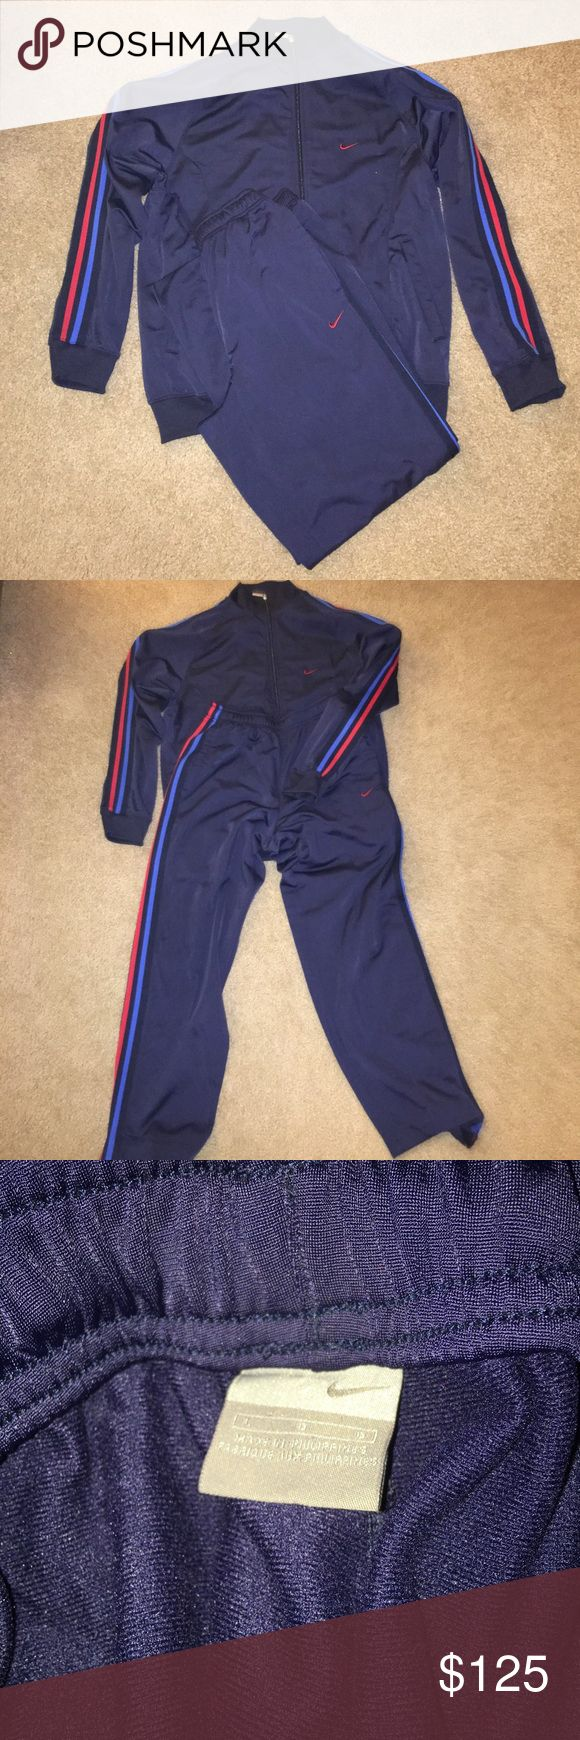 Men's Nike Sweatsuit Brand new without tag. Never worn. Midnight blue with royal blue and red striping on the sleeve and on the sides of the pants. Get this sweatsuit at a wonderful price. Comfortable for wearing to the gym or just lounging around at home. Nike Other